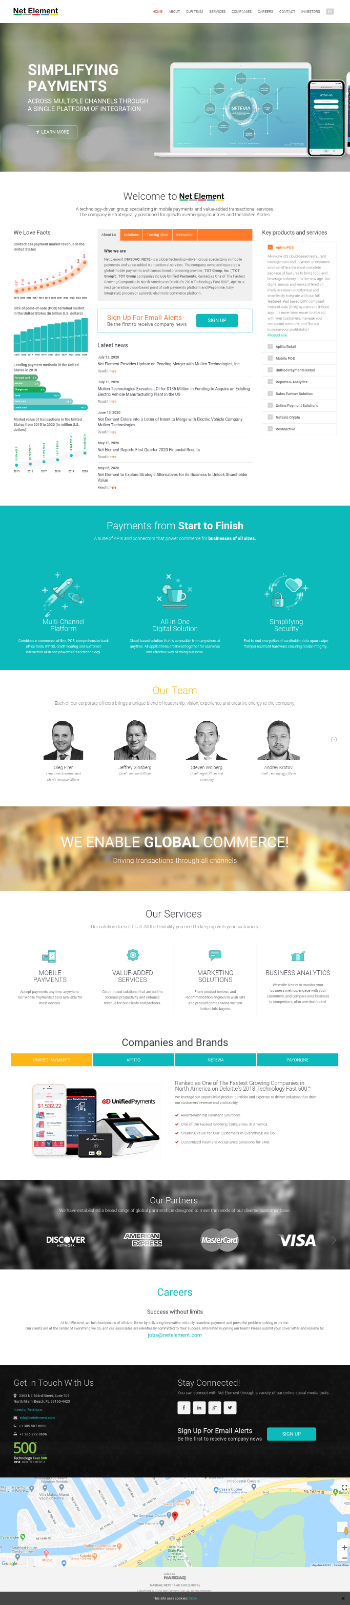 Net Element, Inc. Website Screenshot